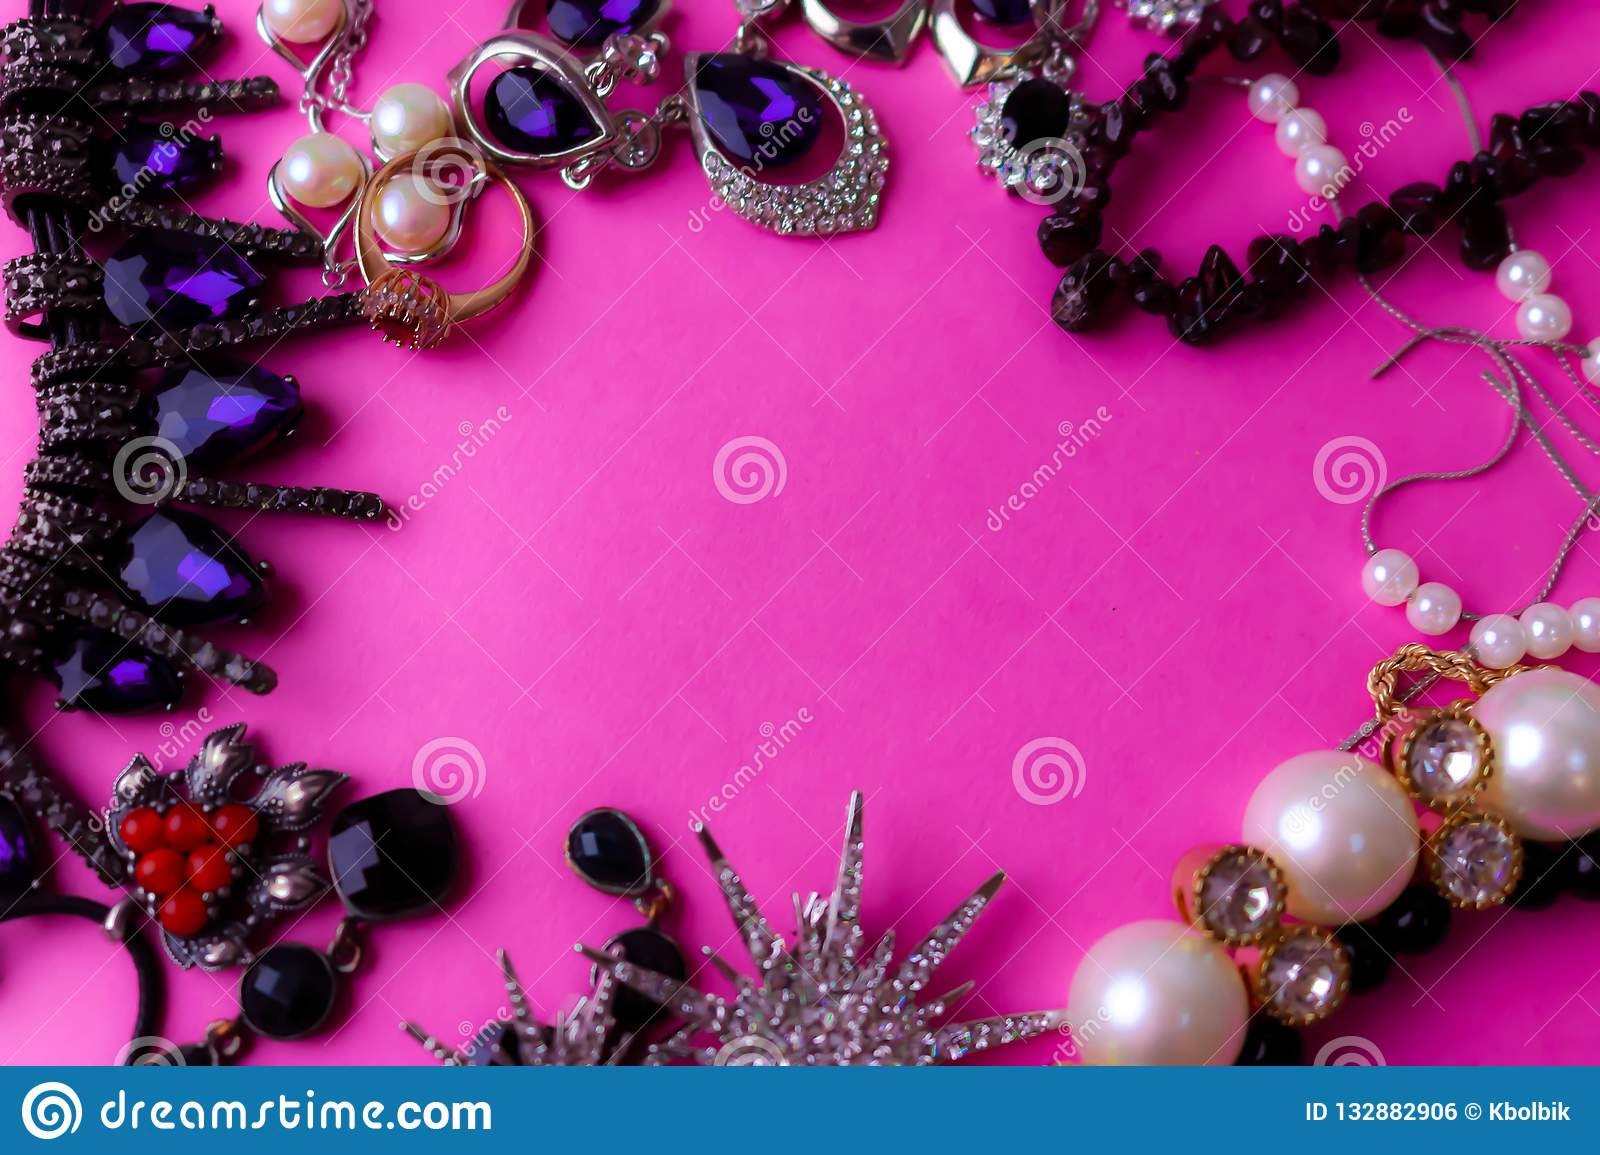 Beautiful precious shiny jewelery trendy glamorous jewelry set, necklace, earrings, rings, chains, brooches with pearls